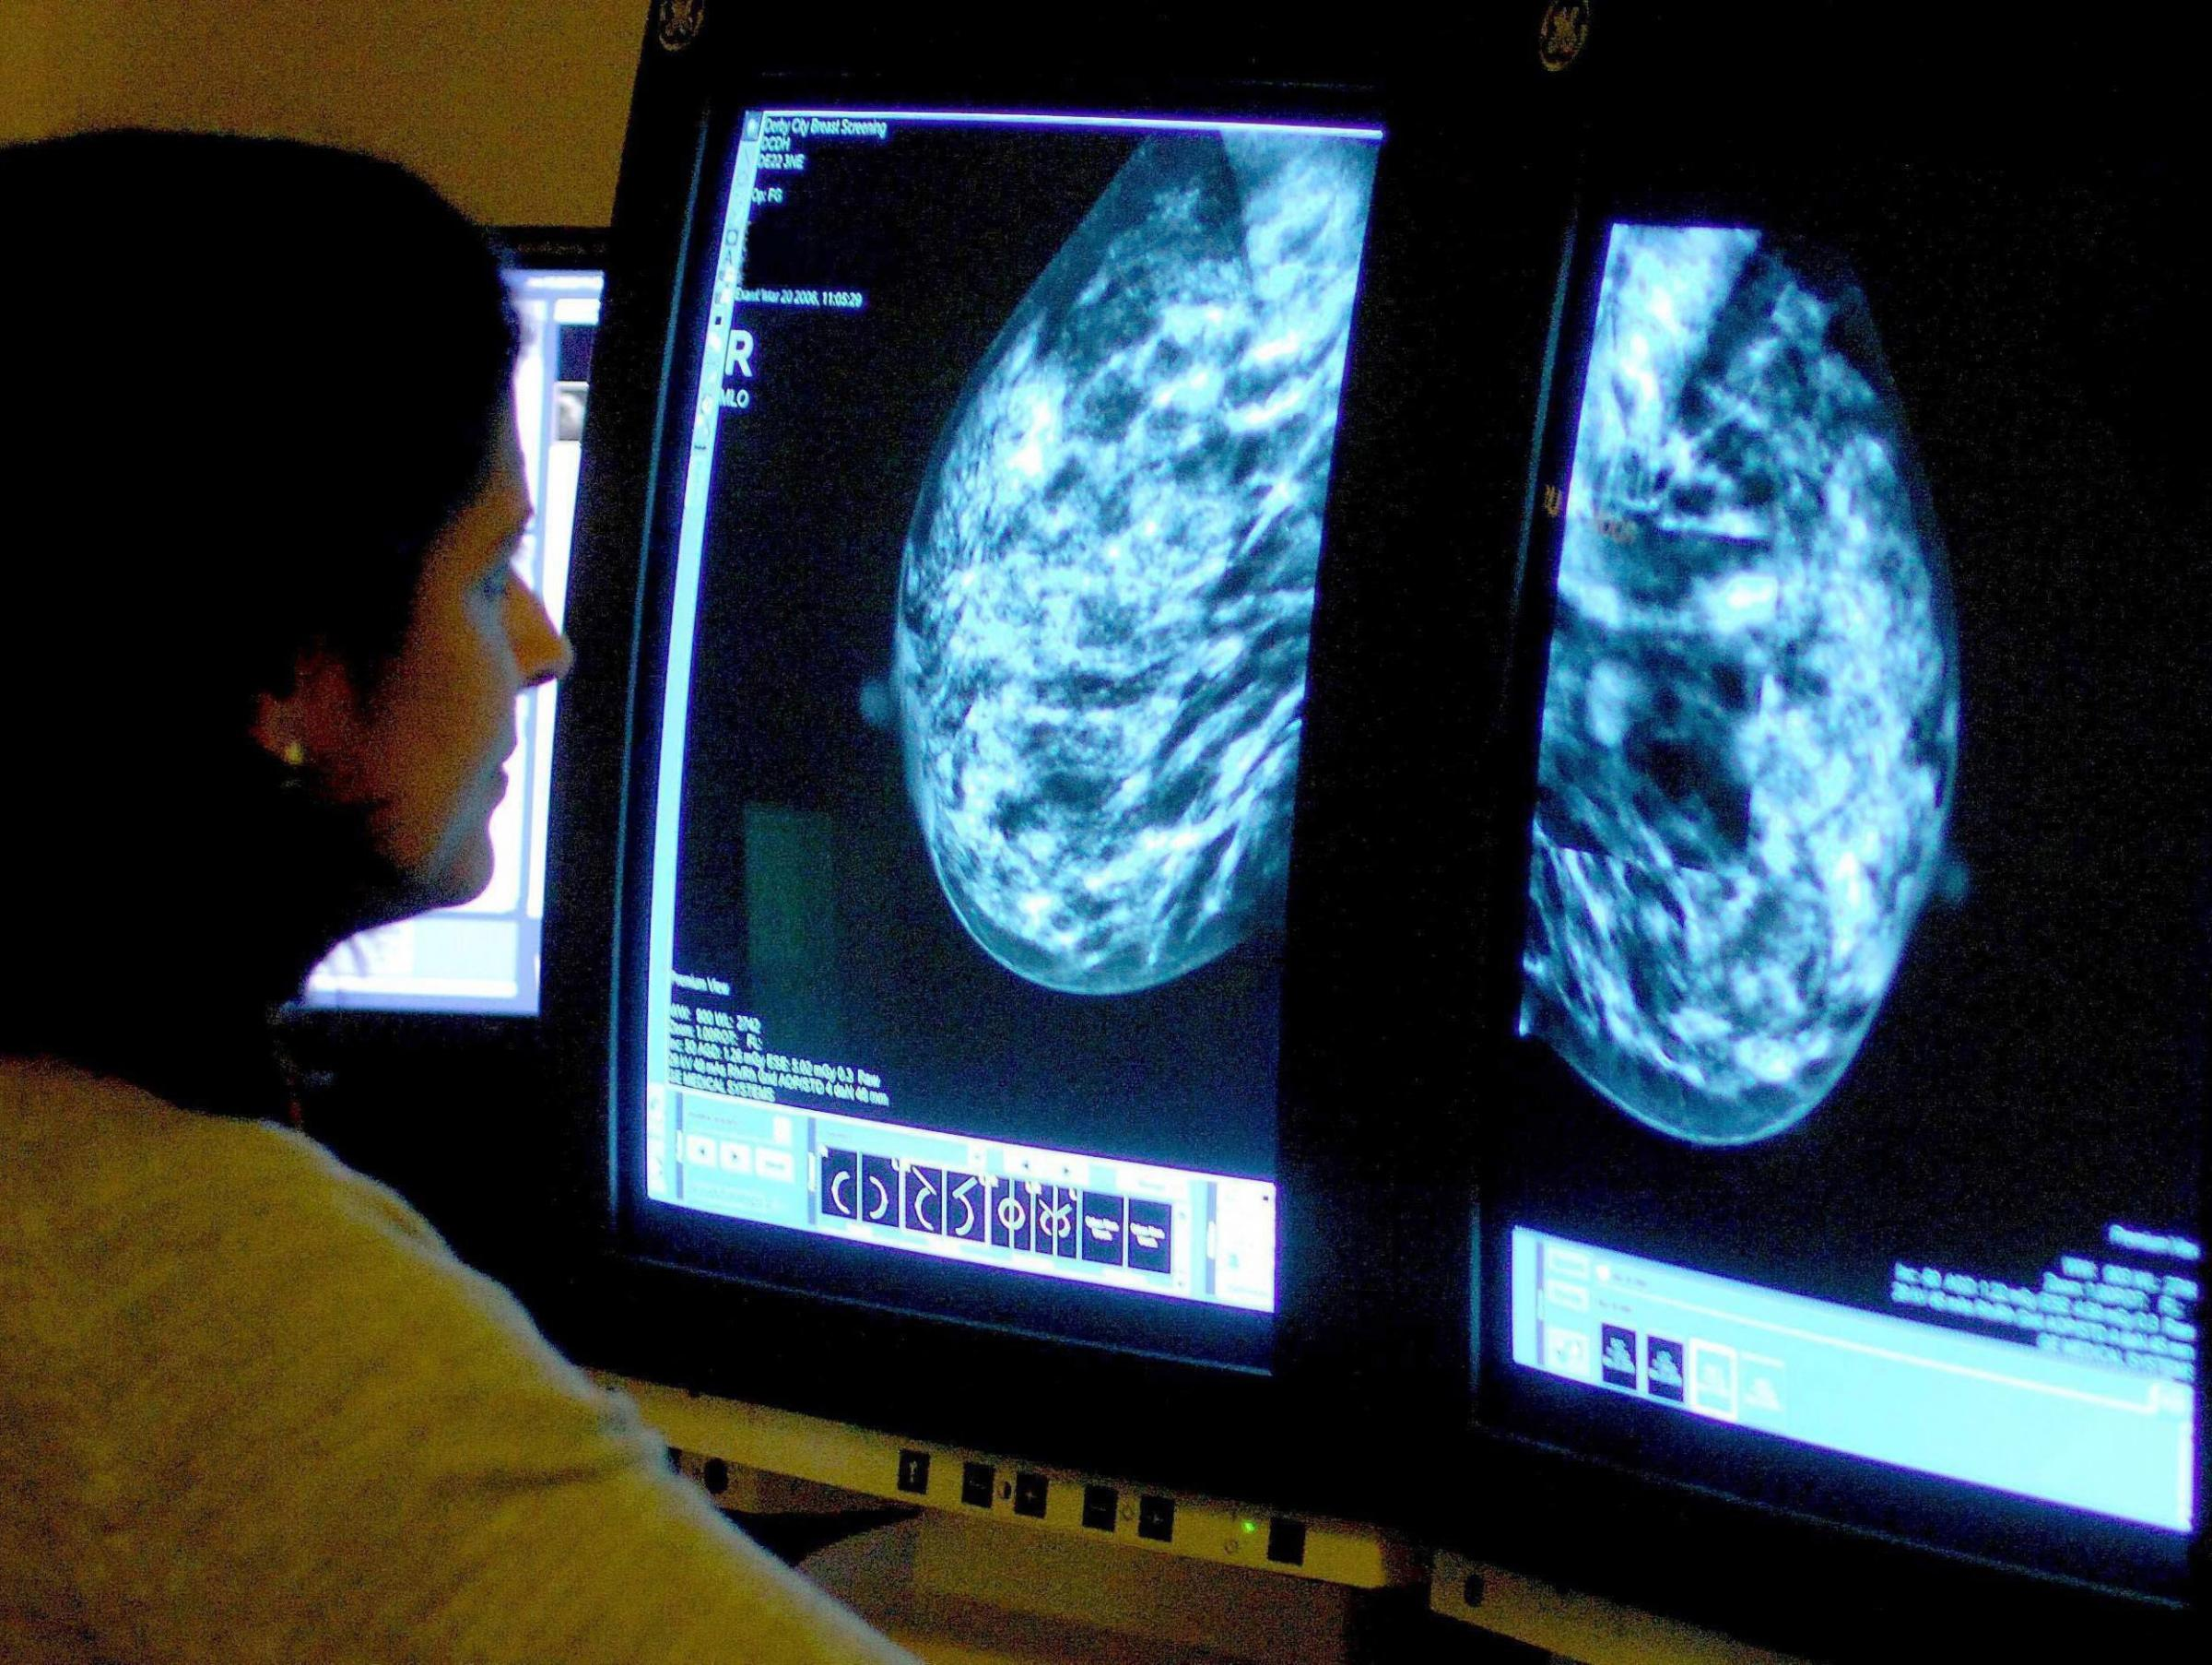 Dorset hospitals fail to provide assurances over national breast cancer screening error